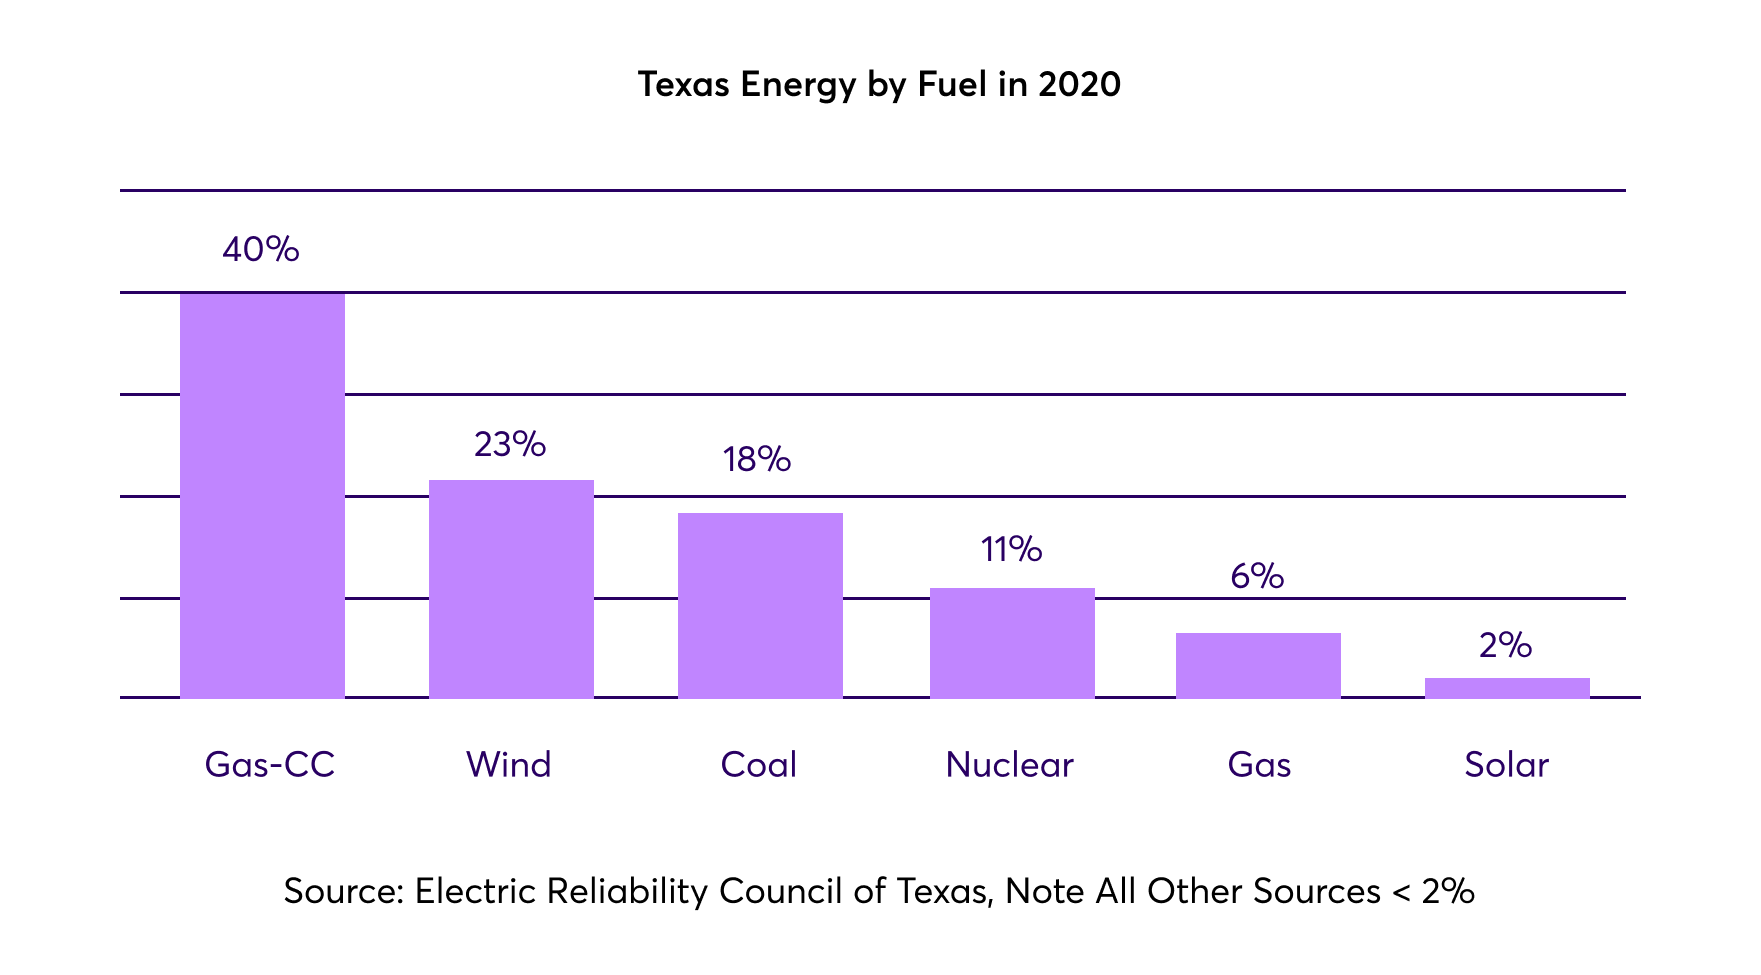 Image: Texas Energy Sources